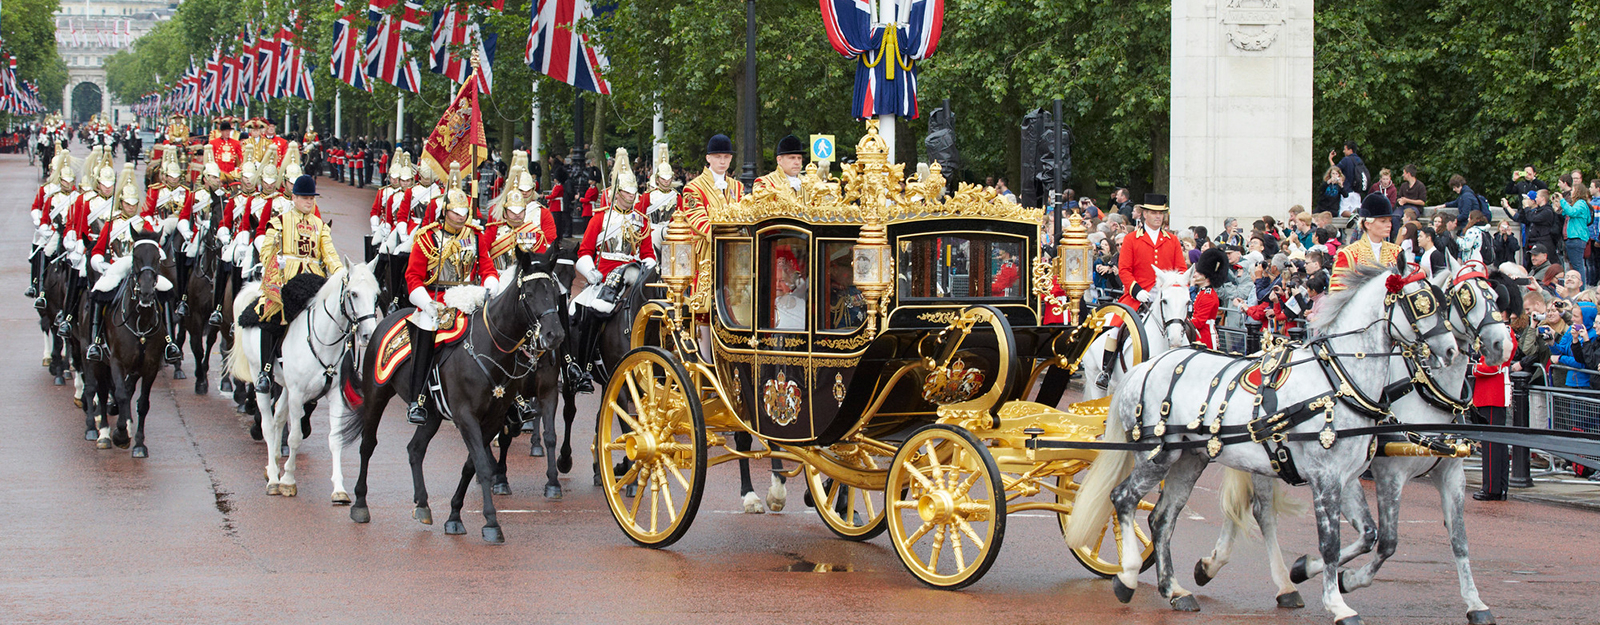 The Diamond Jubilee State Coach at the State Opening of Parliament.